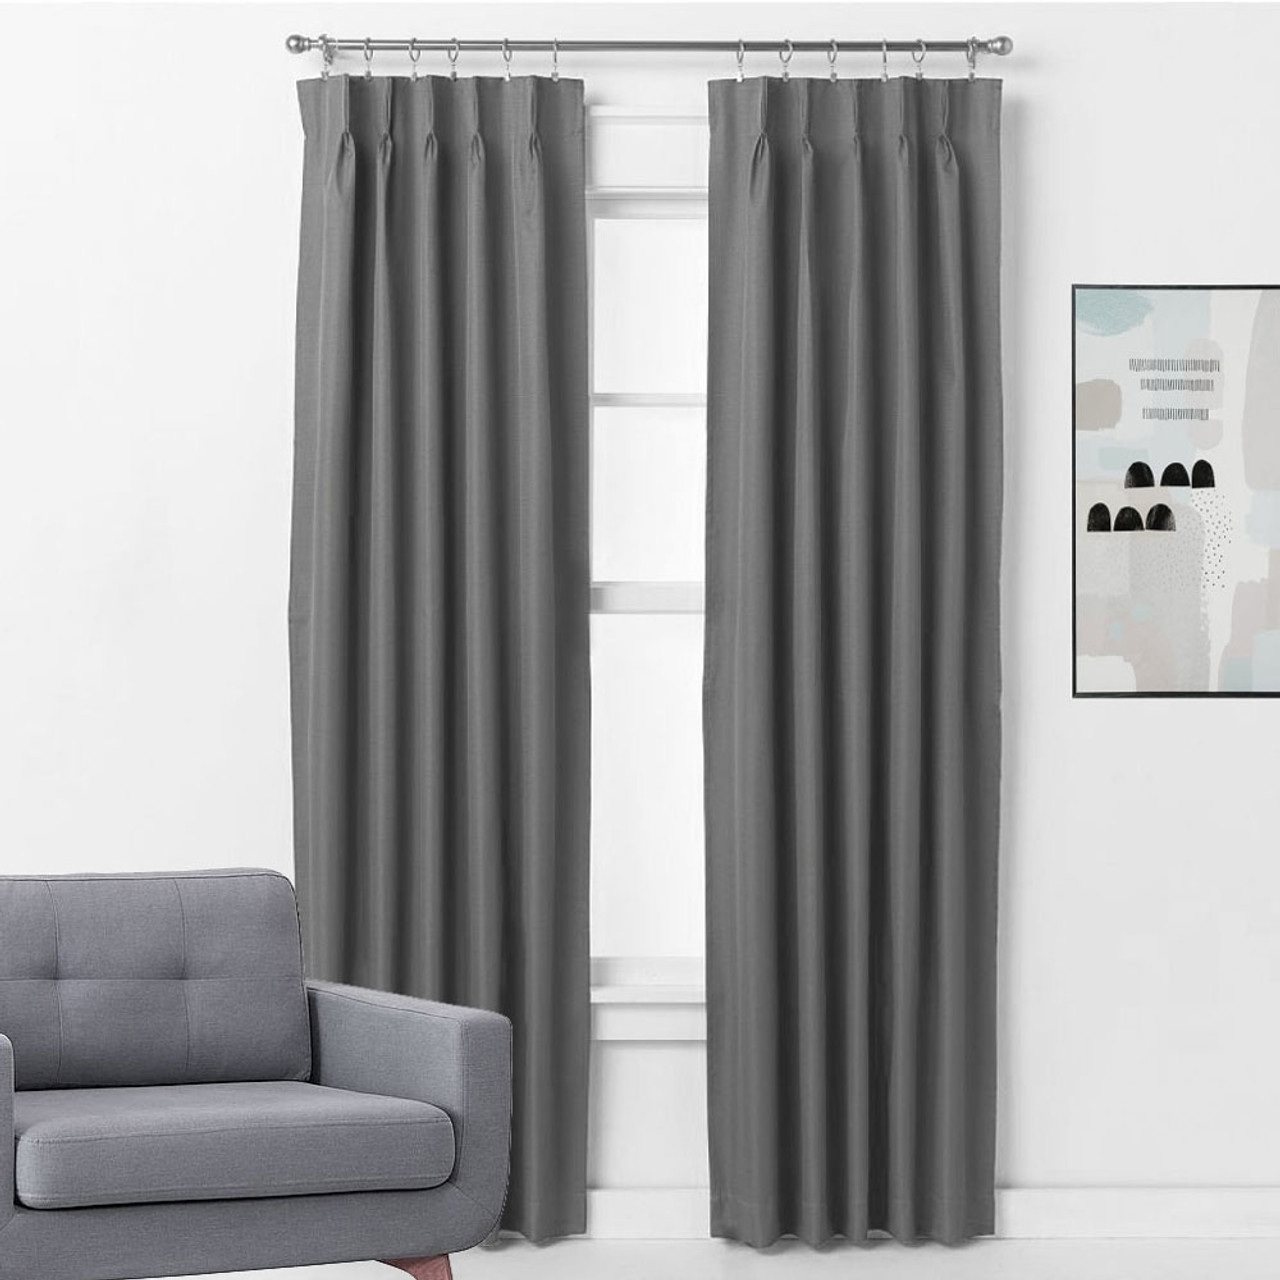 Grey Thermal Curtains Bond Pinch Pleat Room Darkening Soft Drape Curtains Charcoal